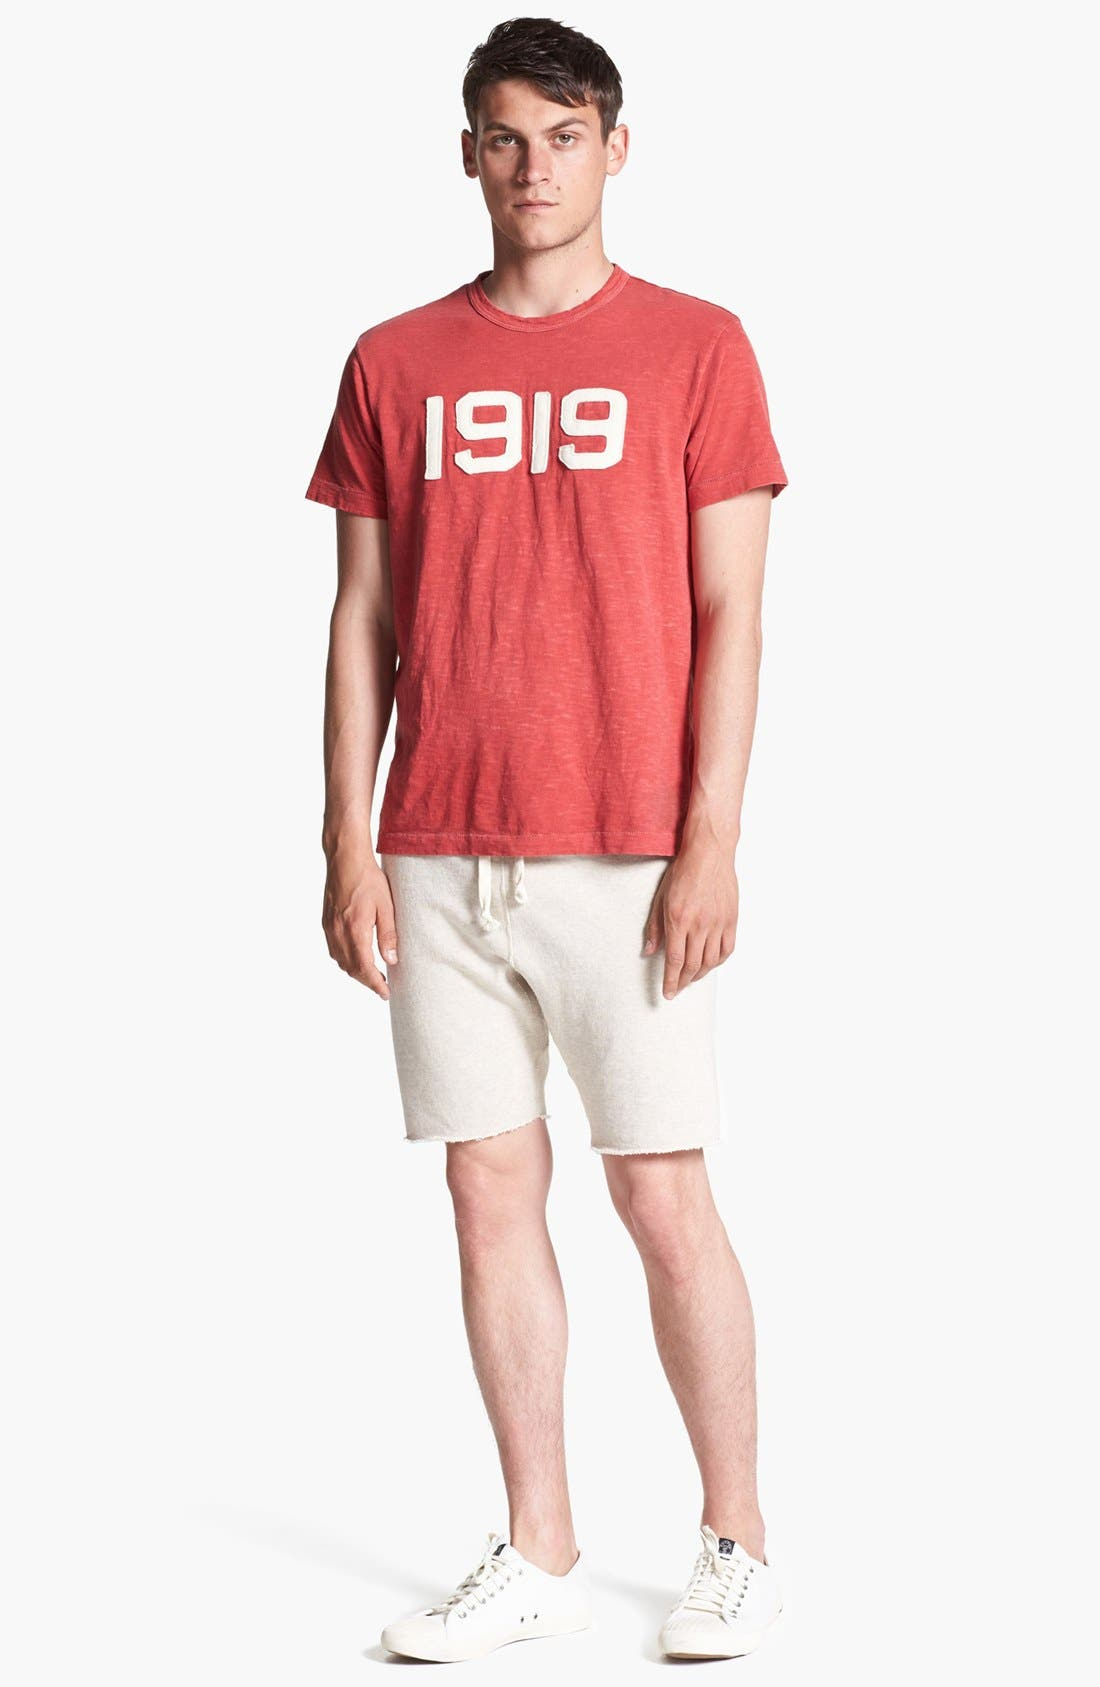 TODD SNYDER + CHAMPION, '1919' T-Shirt, Alternate thumbnail 2, color, 640